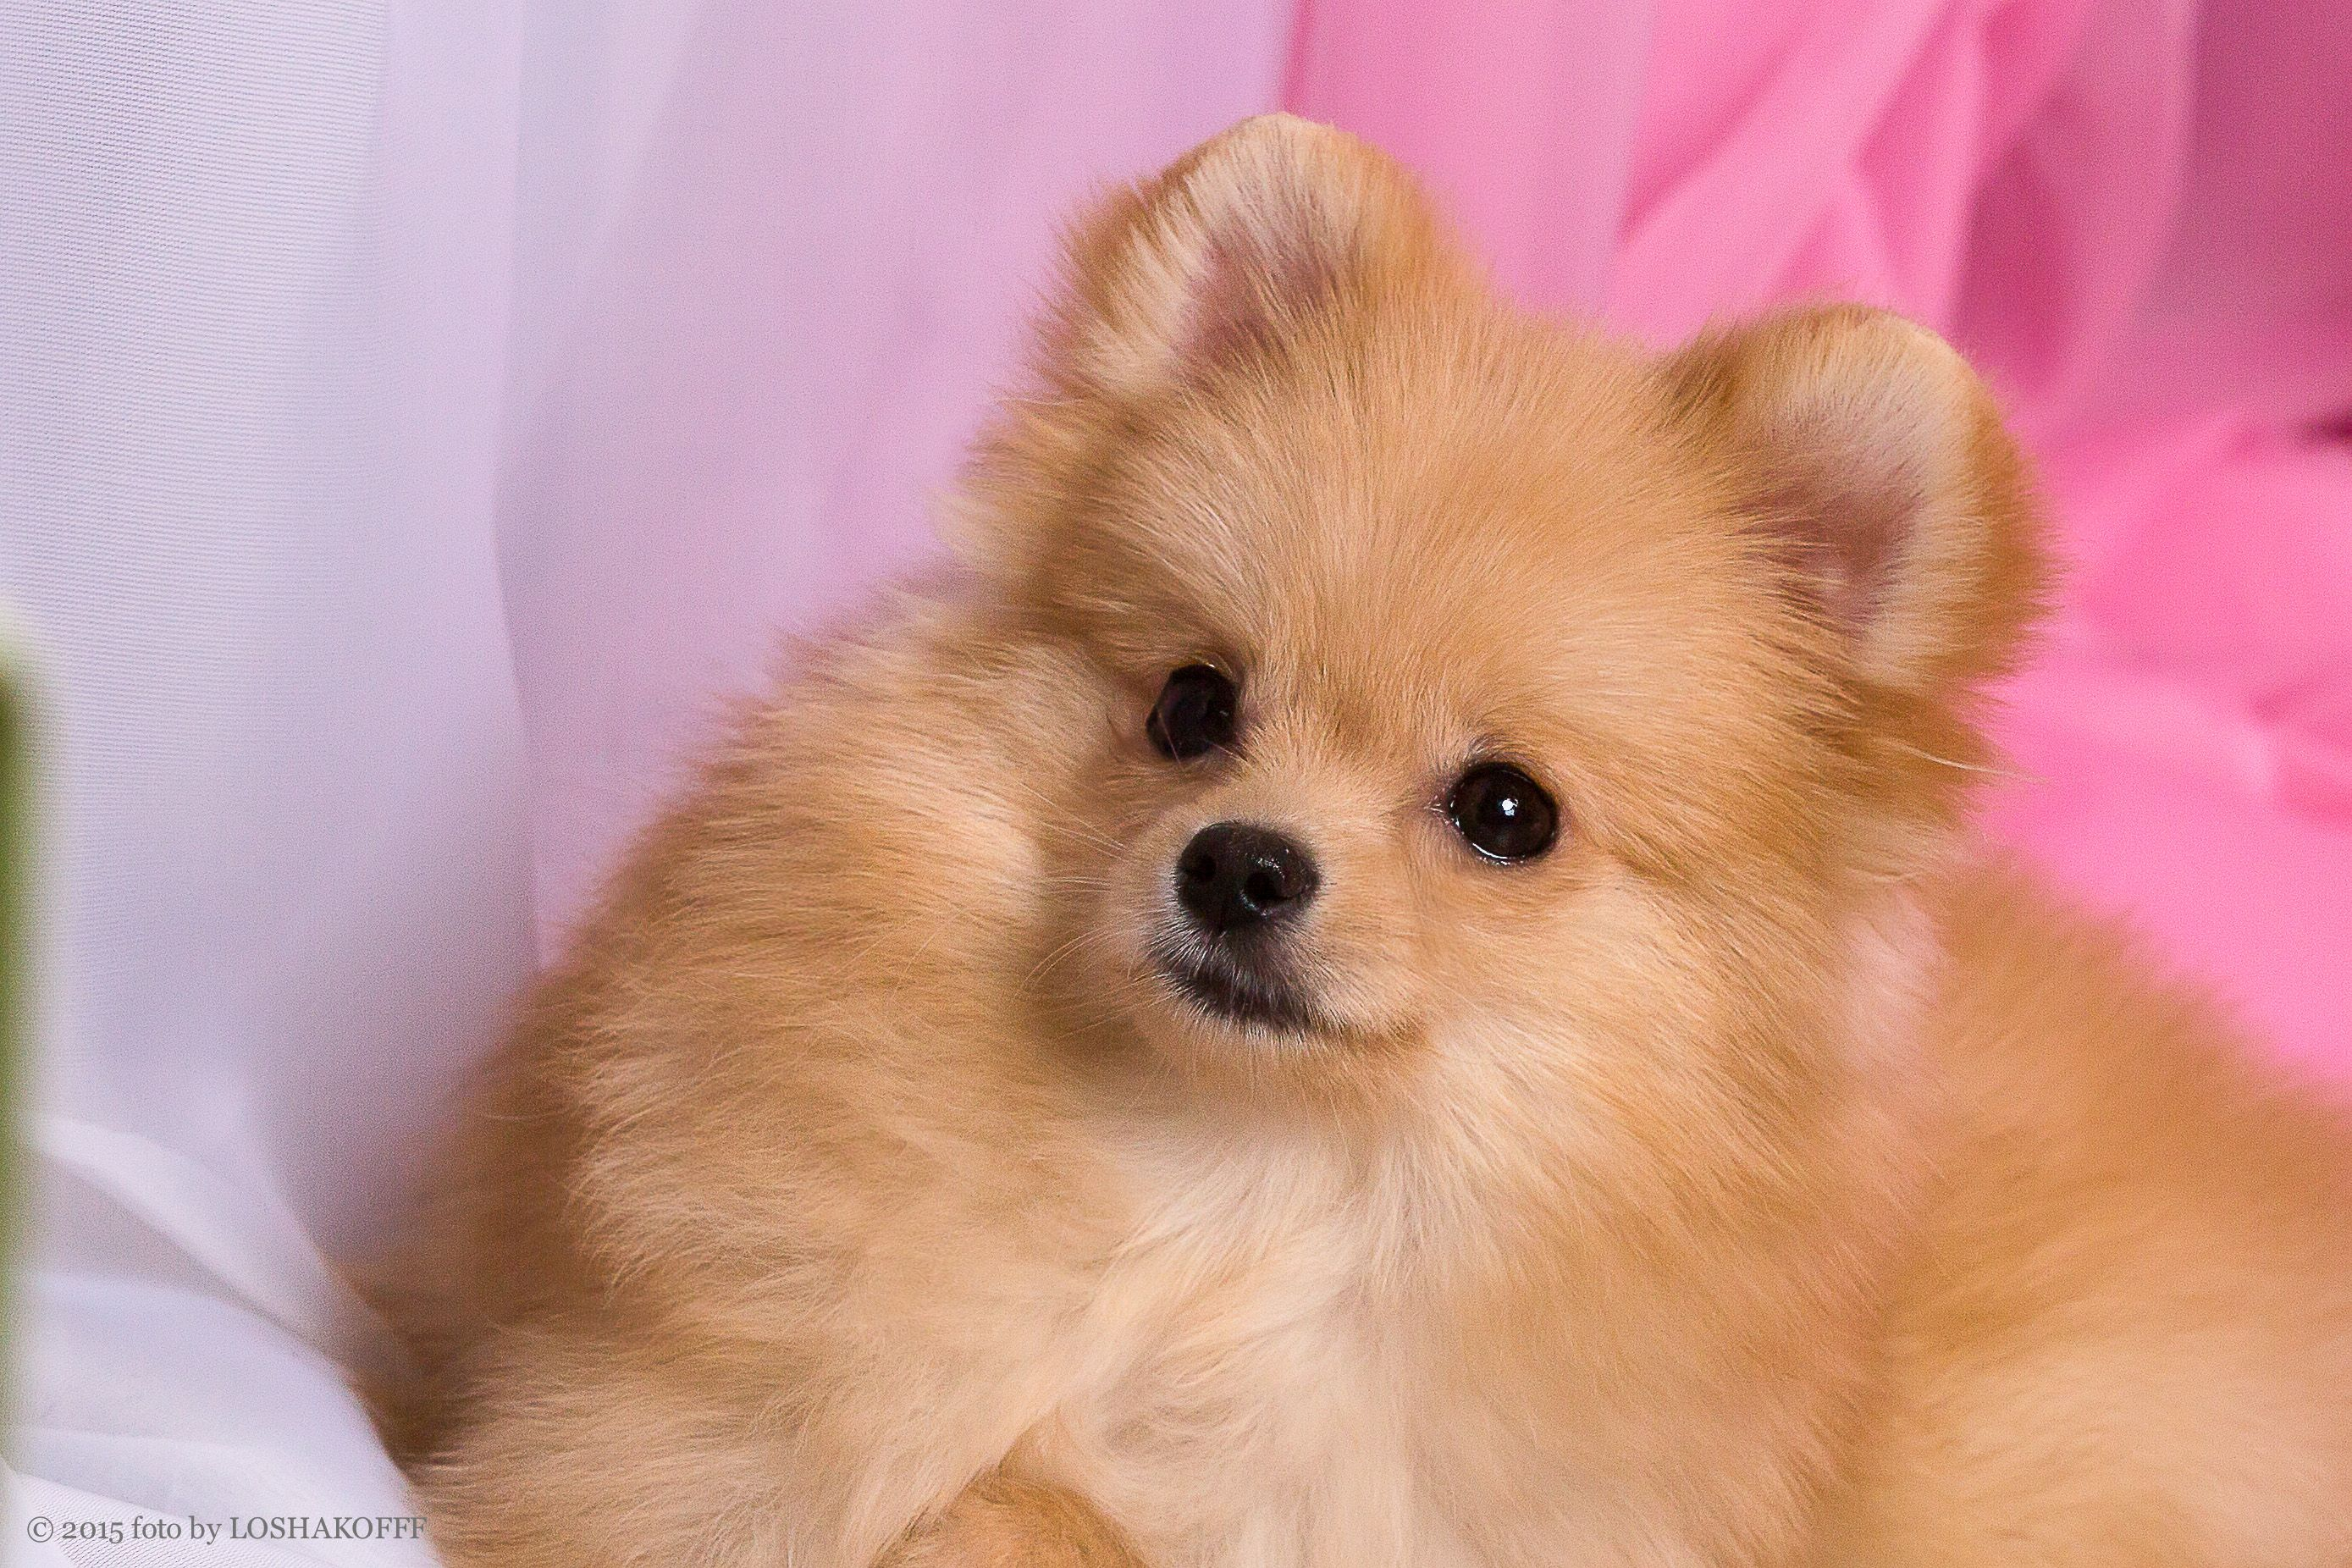 Sale Of Puppies Of A Pomeranian Spitz Dog The Bred Boy Of A